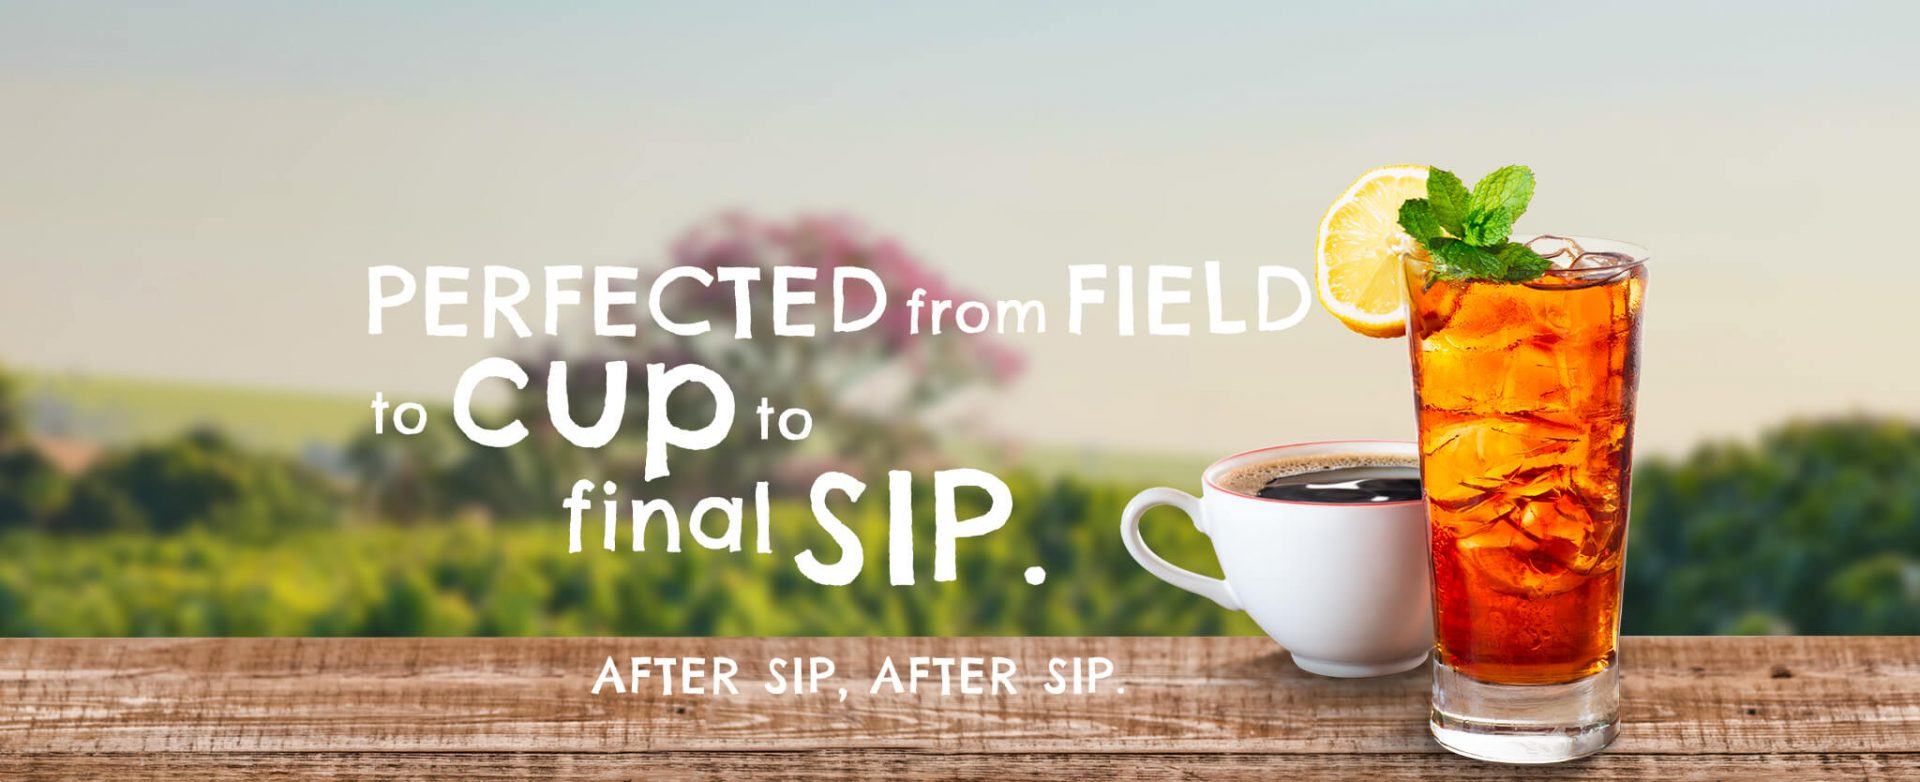 Protected from field to cup to final sip